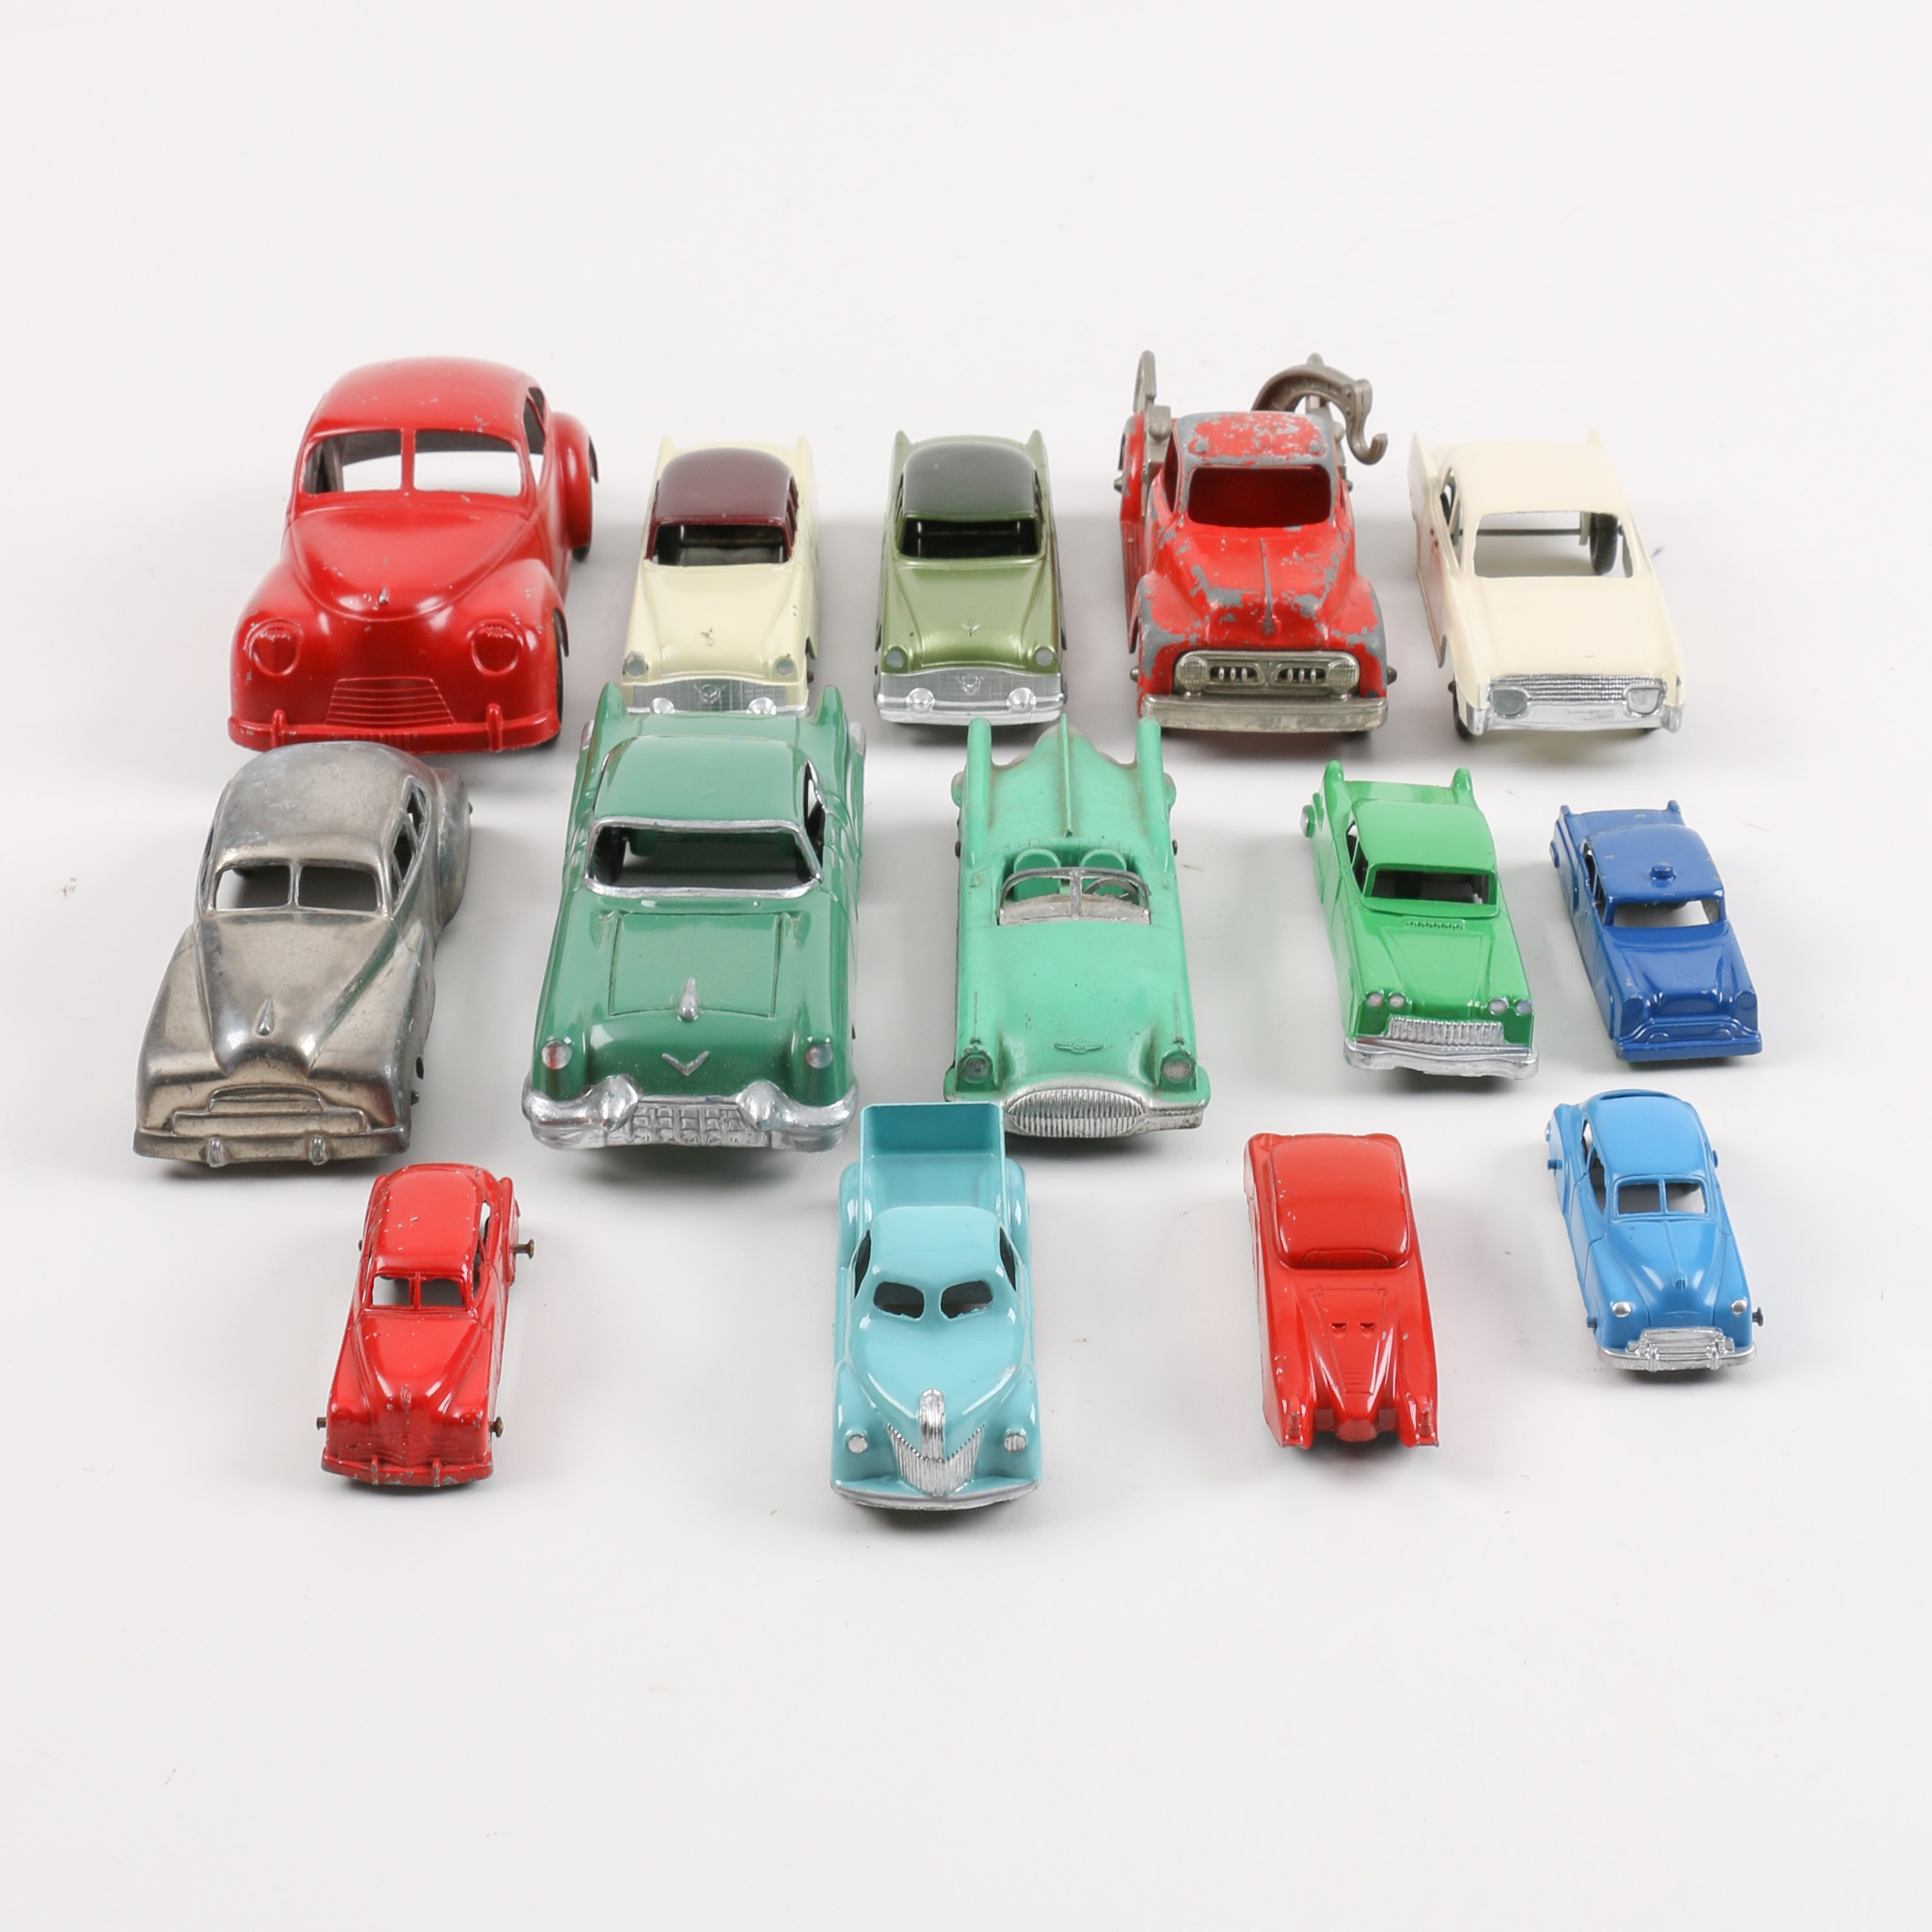 Collection of Smaller Pressed Steel Toy Cars